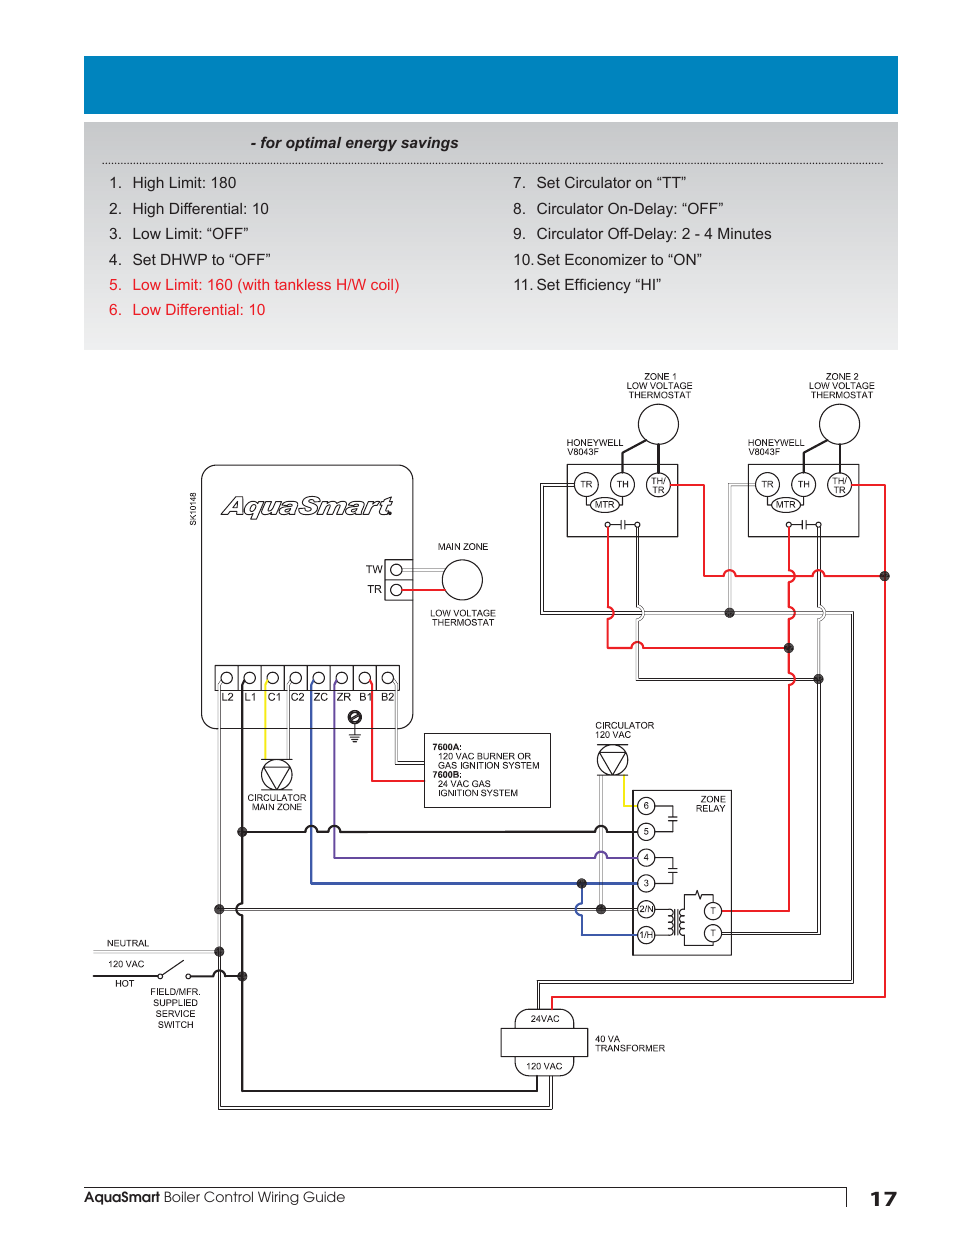 Beckett Igniter Wiring Diagram Trusted Diagrams Oil Furnace 7600a Schematic Www Burner